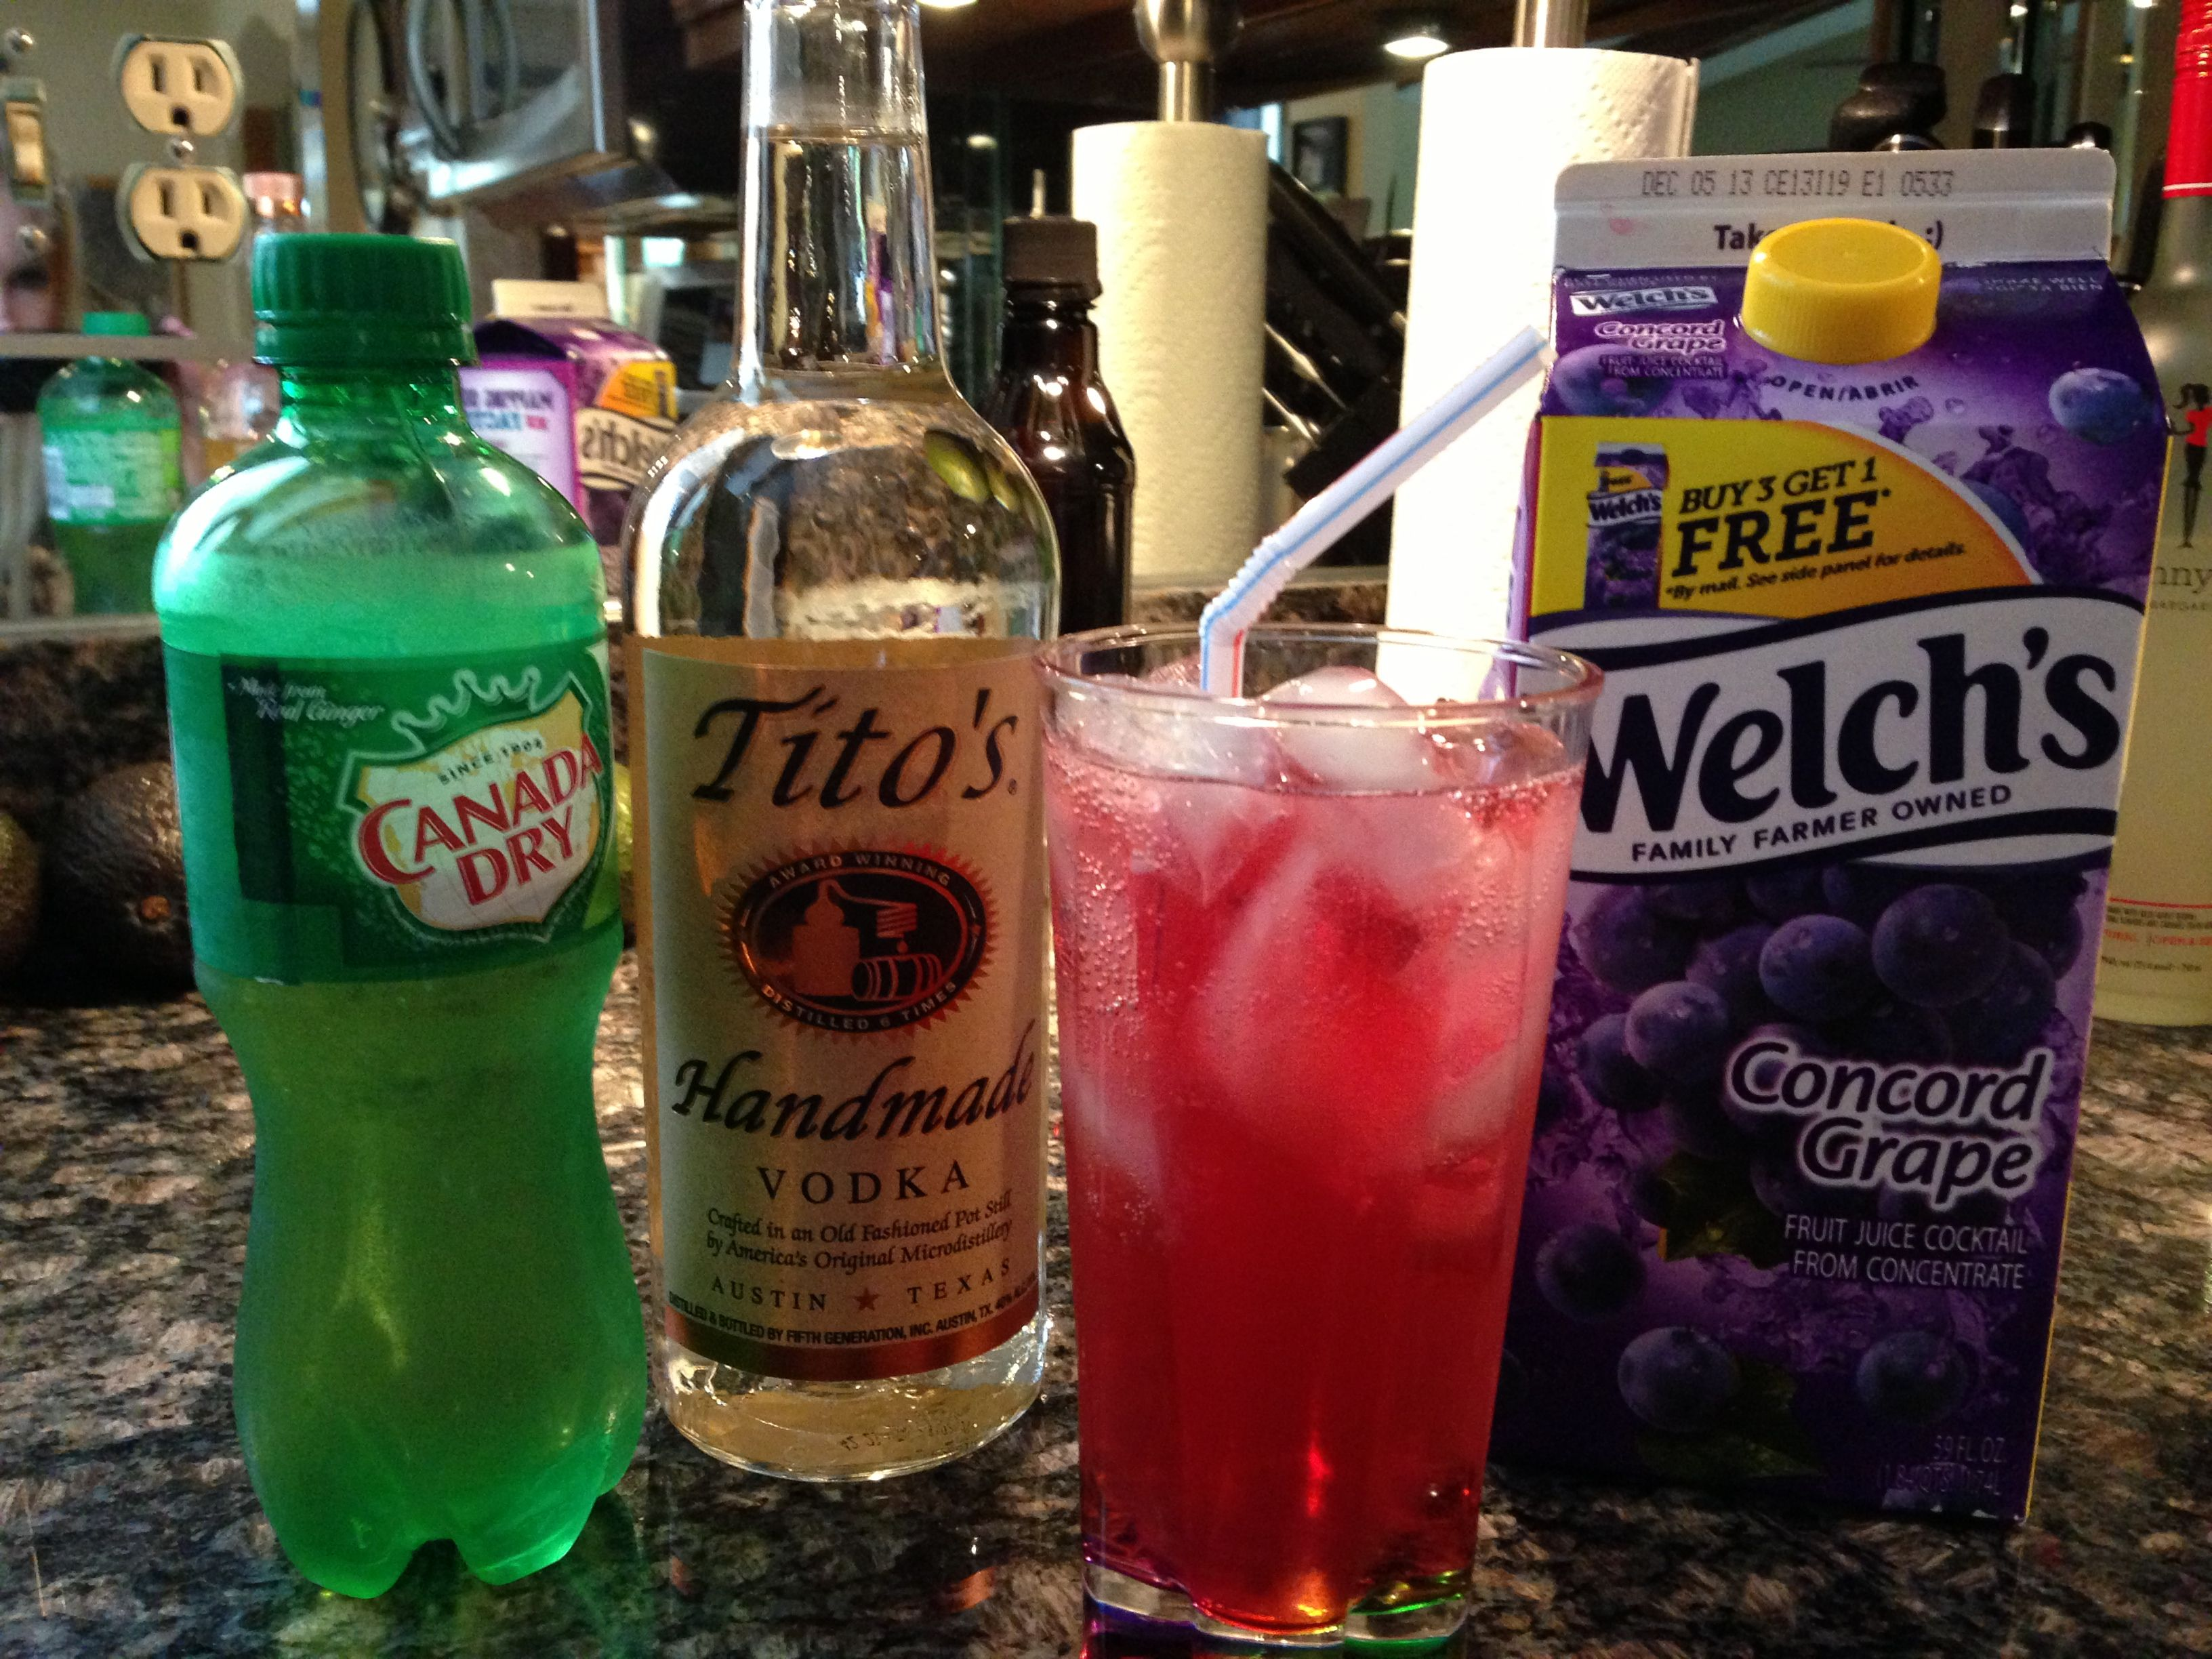 Transfusion Drink  Vodka, Ginger Ale, Grape Juice